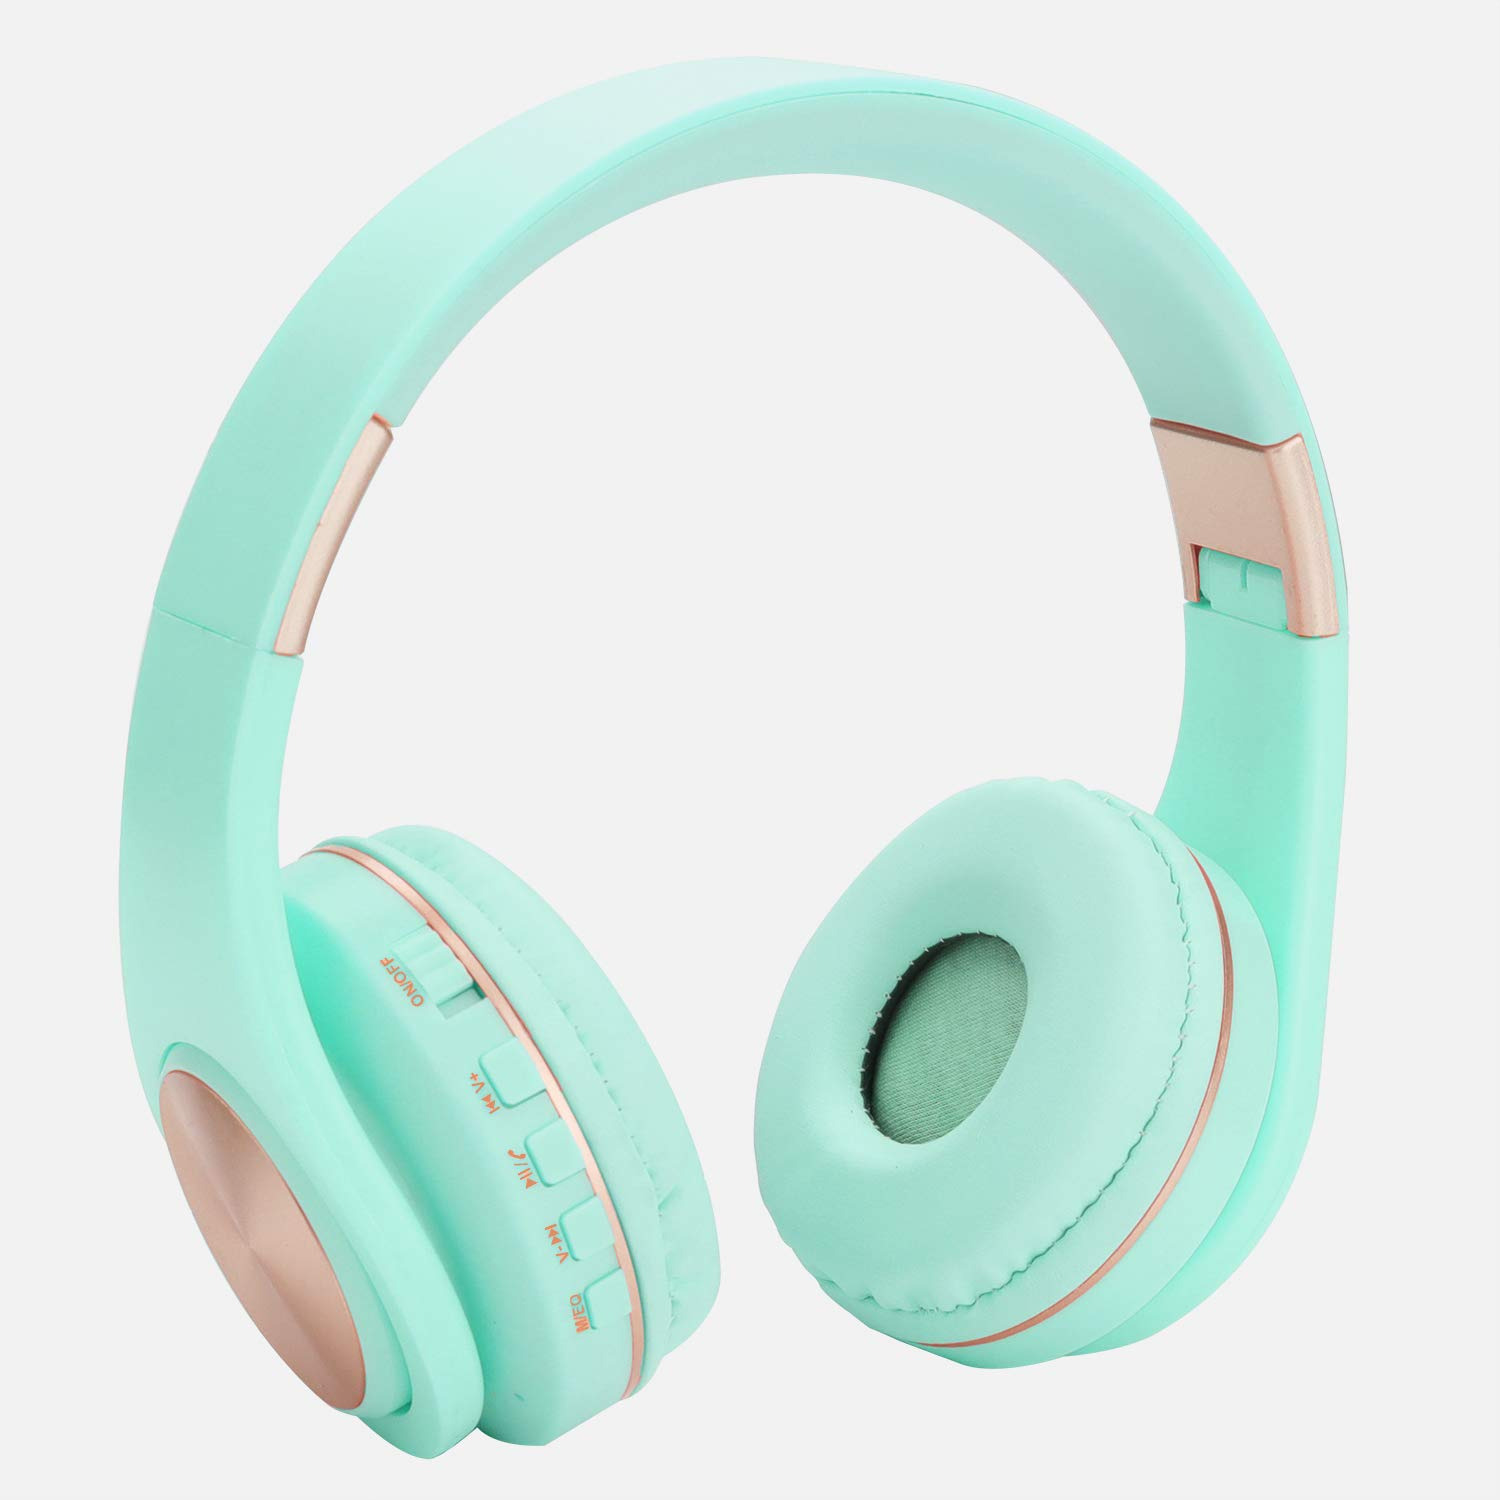 Kids Bluetooth Headphones Wireless Wired On Ear Foldable Headphones for Kids Adults,Built-in Mic,FM,Micro SD TF Card Slot,Stereo Sound for Pc Tablet Cell Phones Ipad Airplane School Use Blue